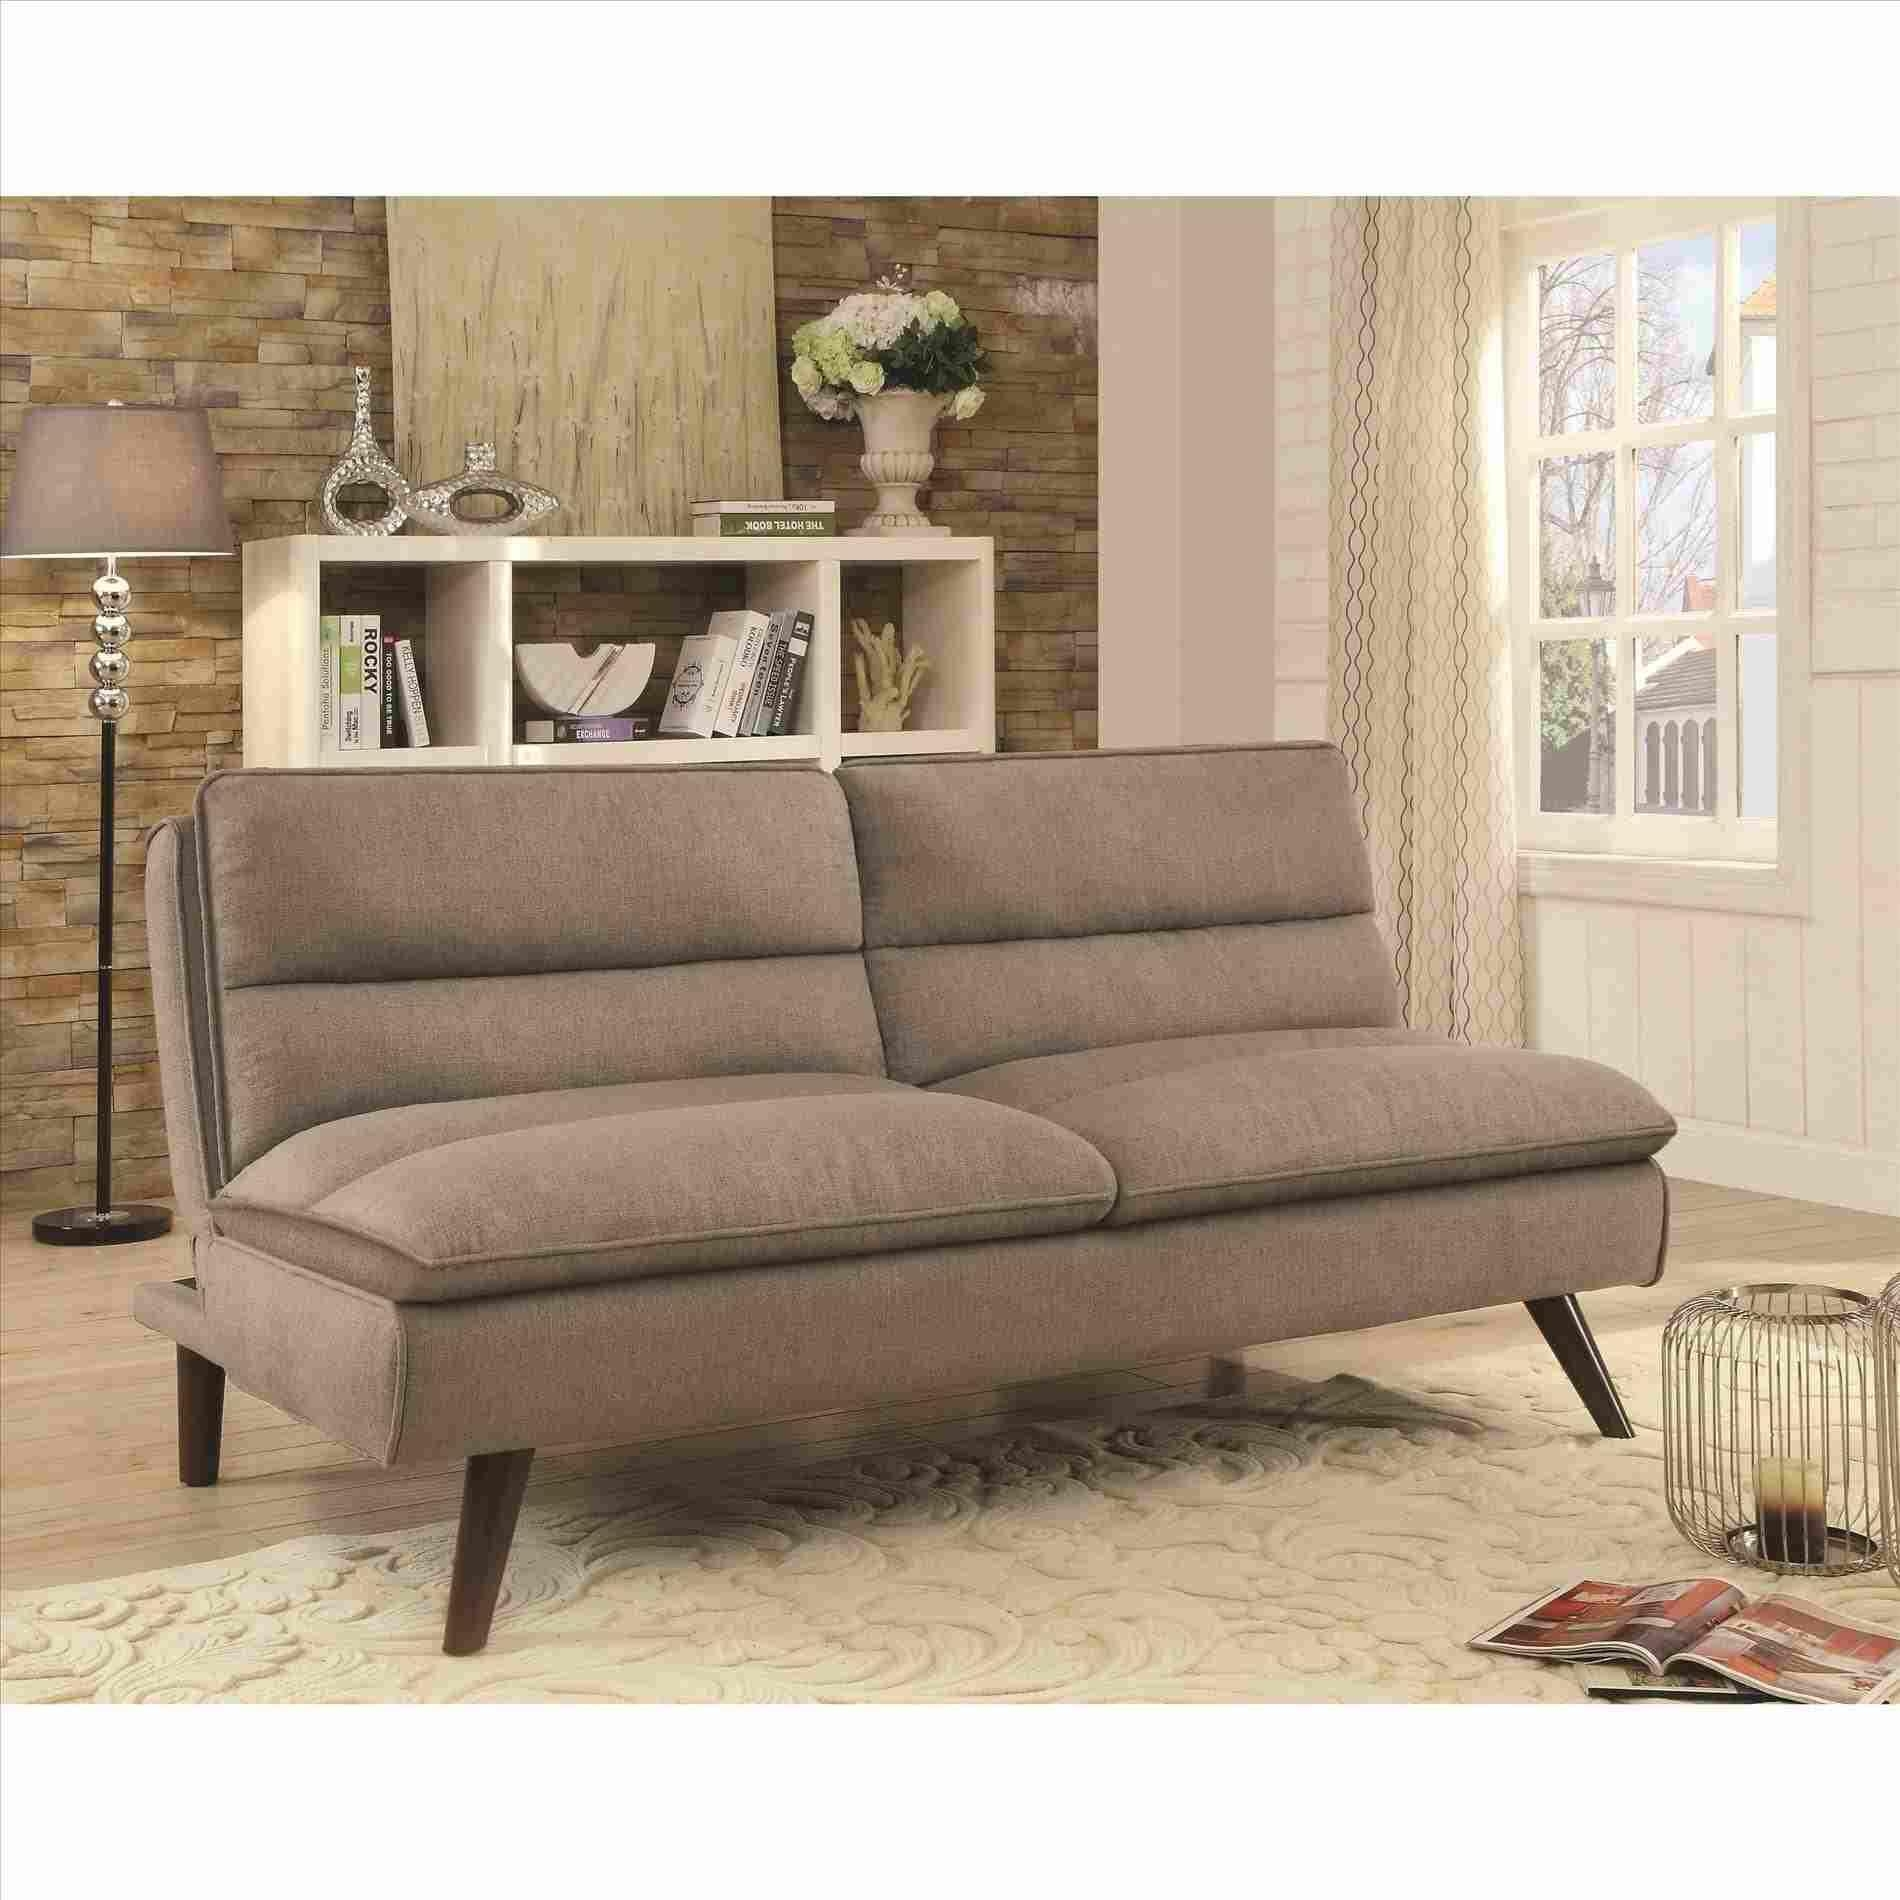 Coaster Futon Sofa Bed | Sofa And Chair Information In Coaster Futon Sofa Beds (View 18 of 20)